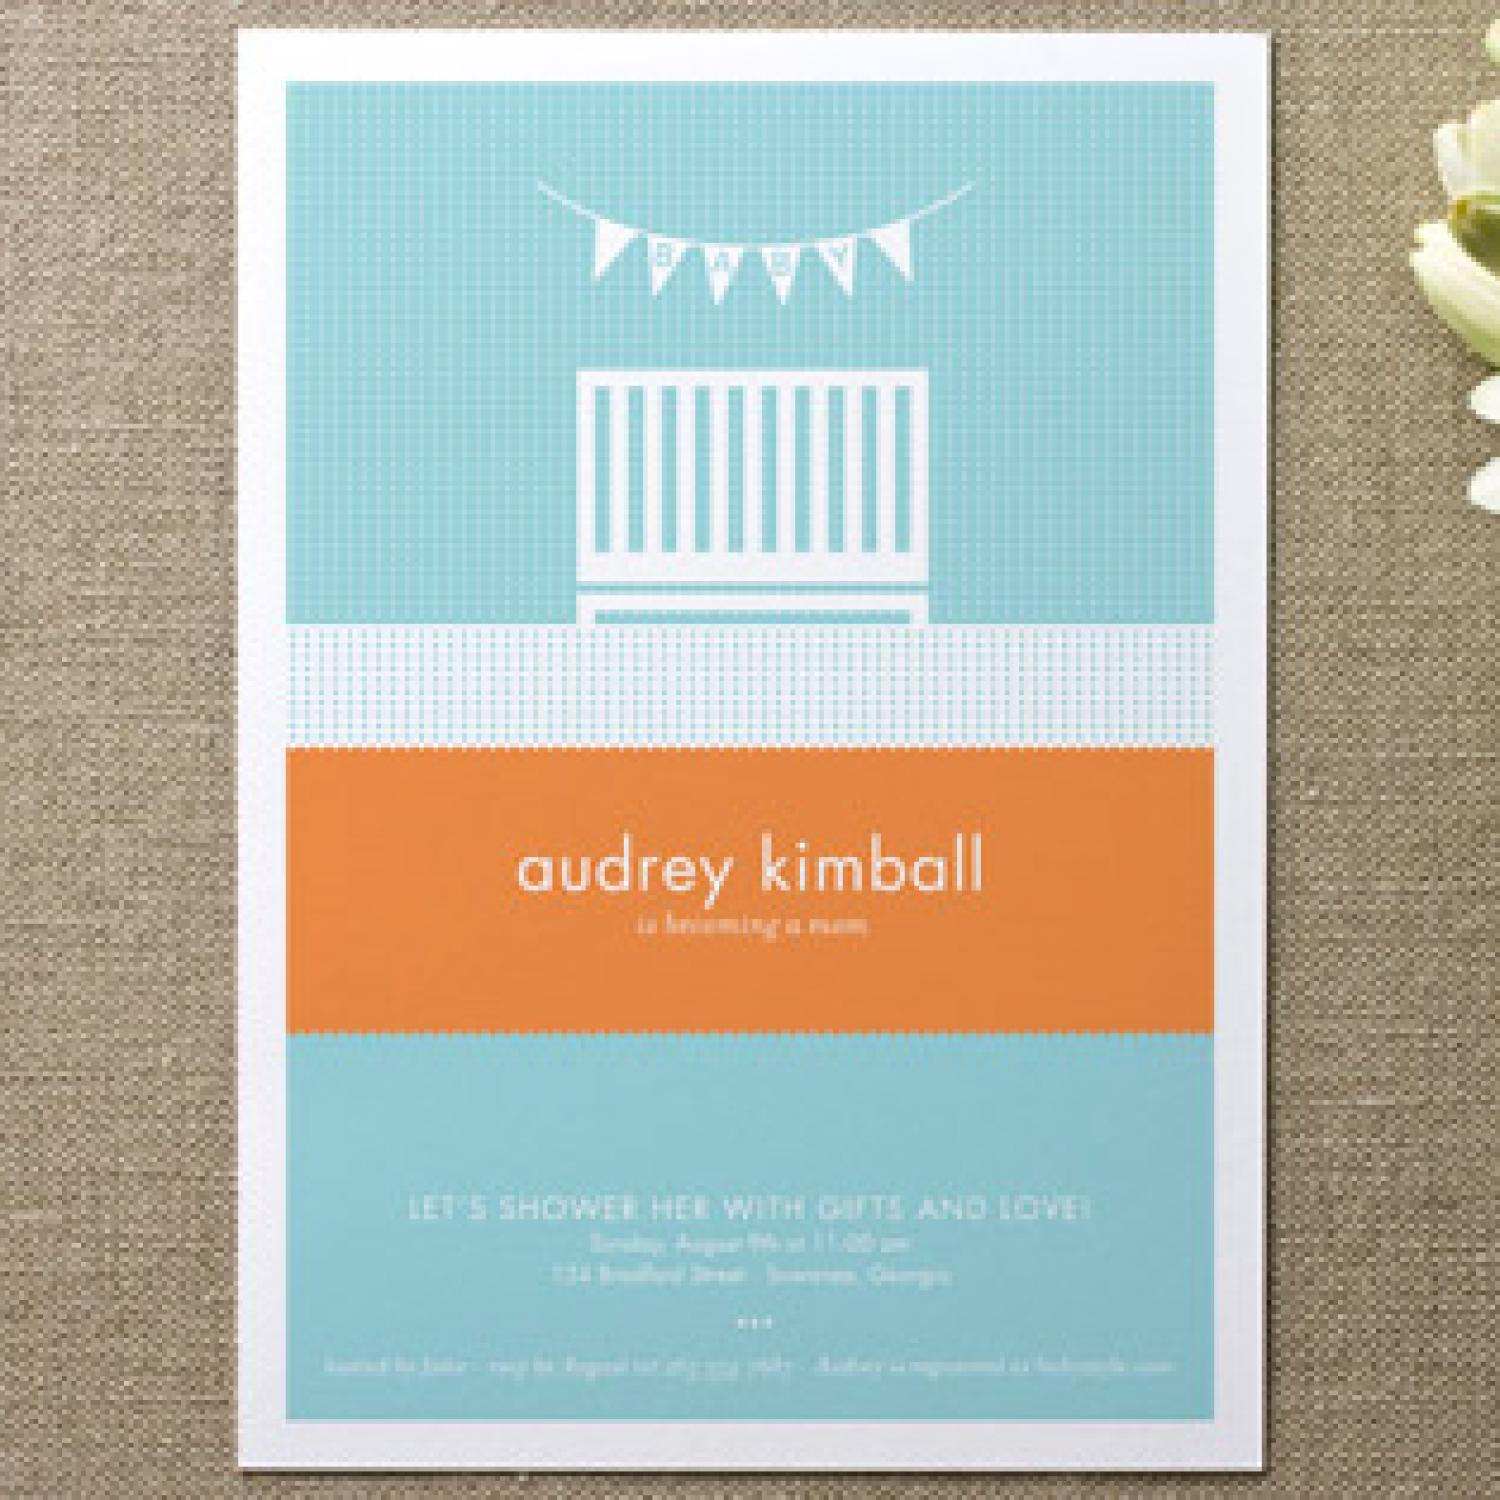 Full Size of Baby Shower:baby Boy Shower Ideas Free Printable Baby Shower Games Free Baby Shower Ideas Unique Baby Shower Decorations Nursery For Girls Baby Shower Baby Shower Invitations For Girls Baby Boy Shower Ideas